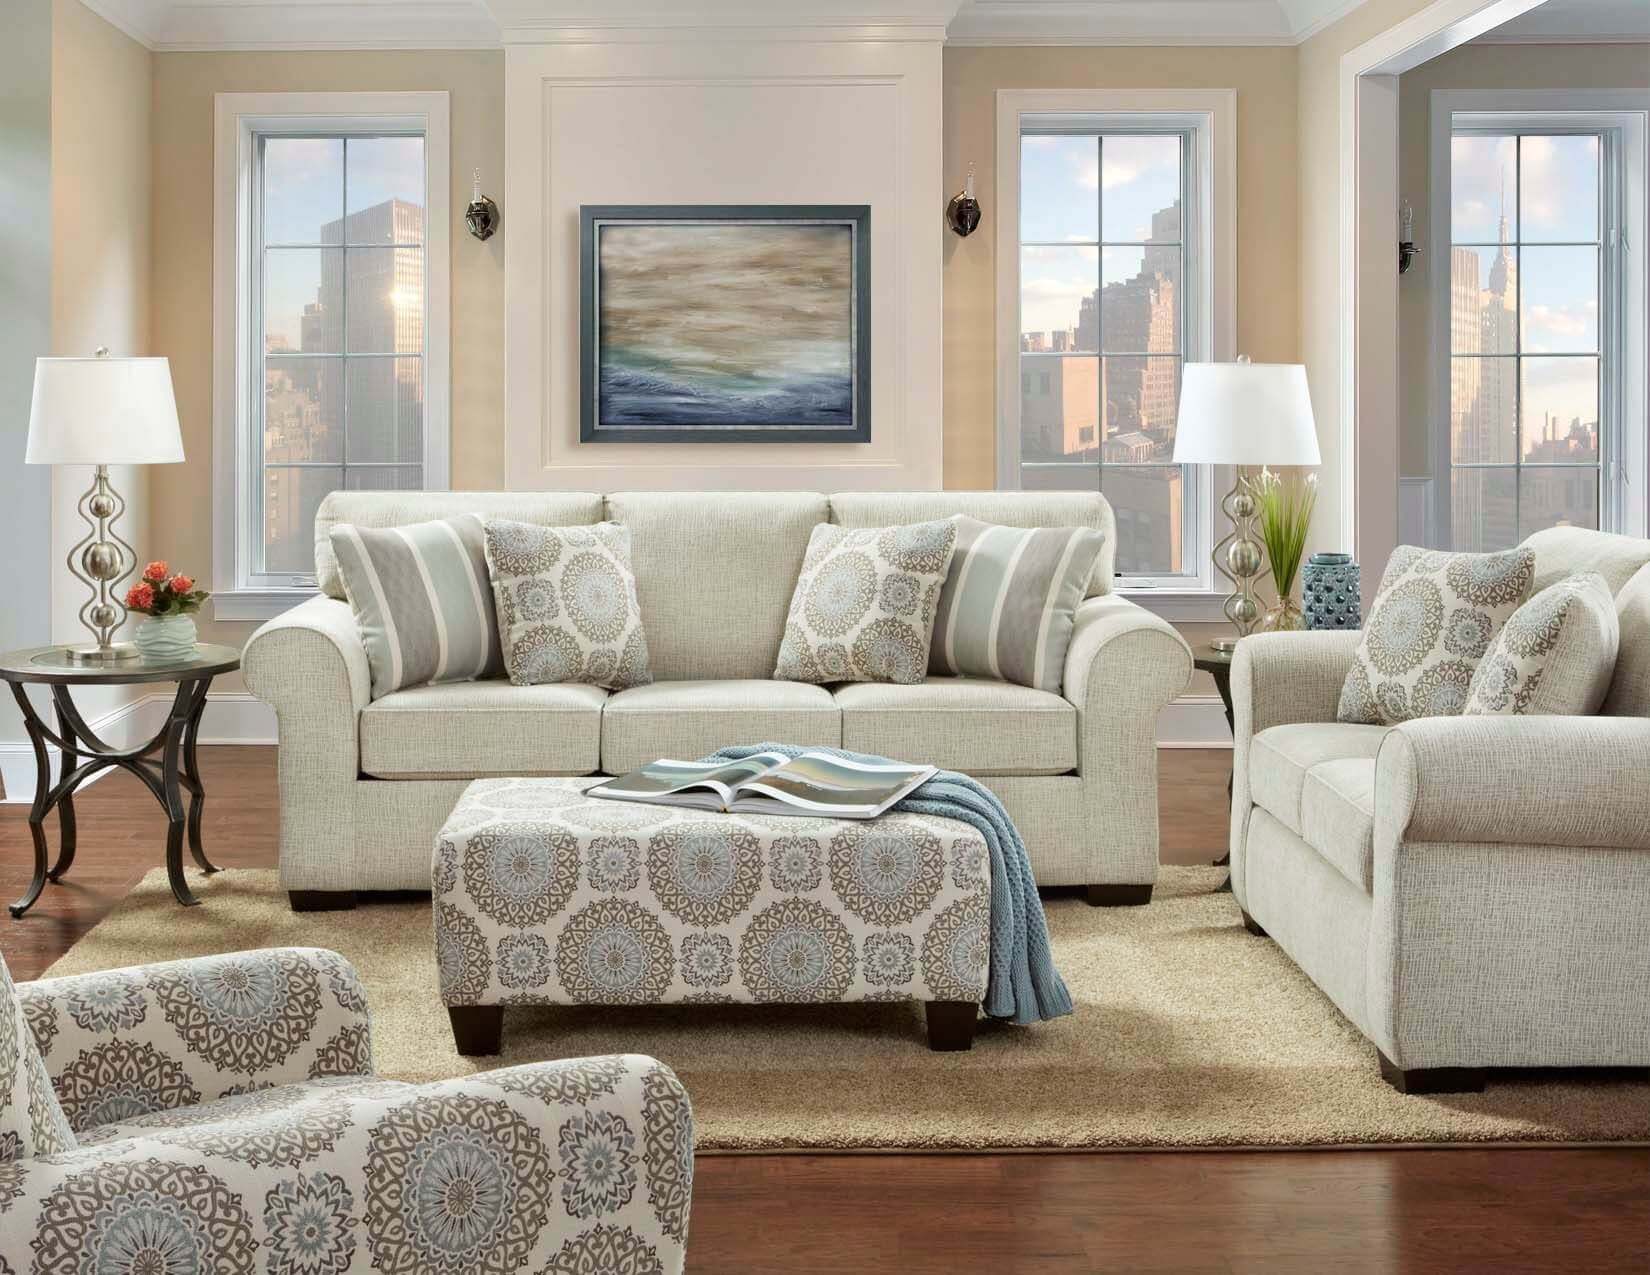 average cost of living room set charisma linen sofa and loveseat fabric living room sets 24663